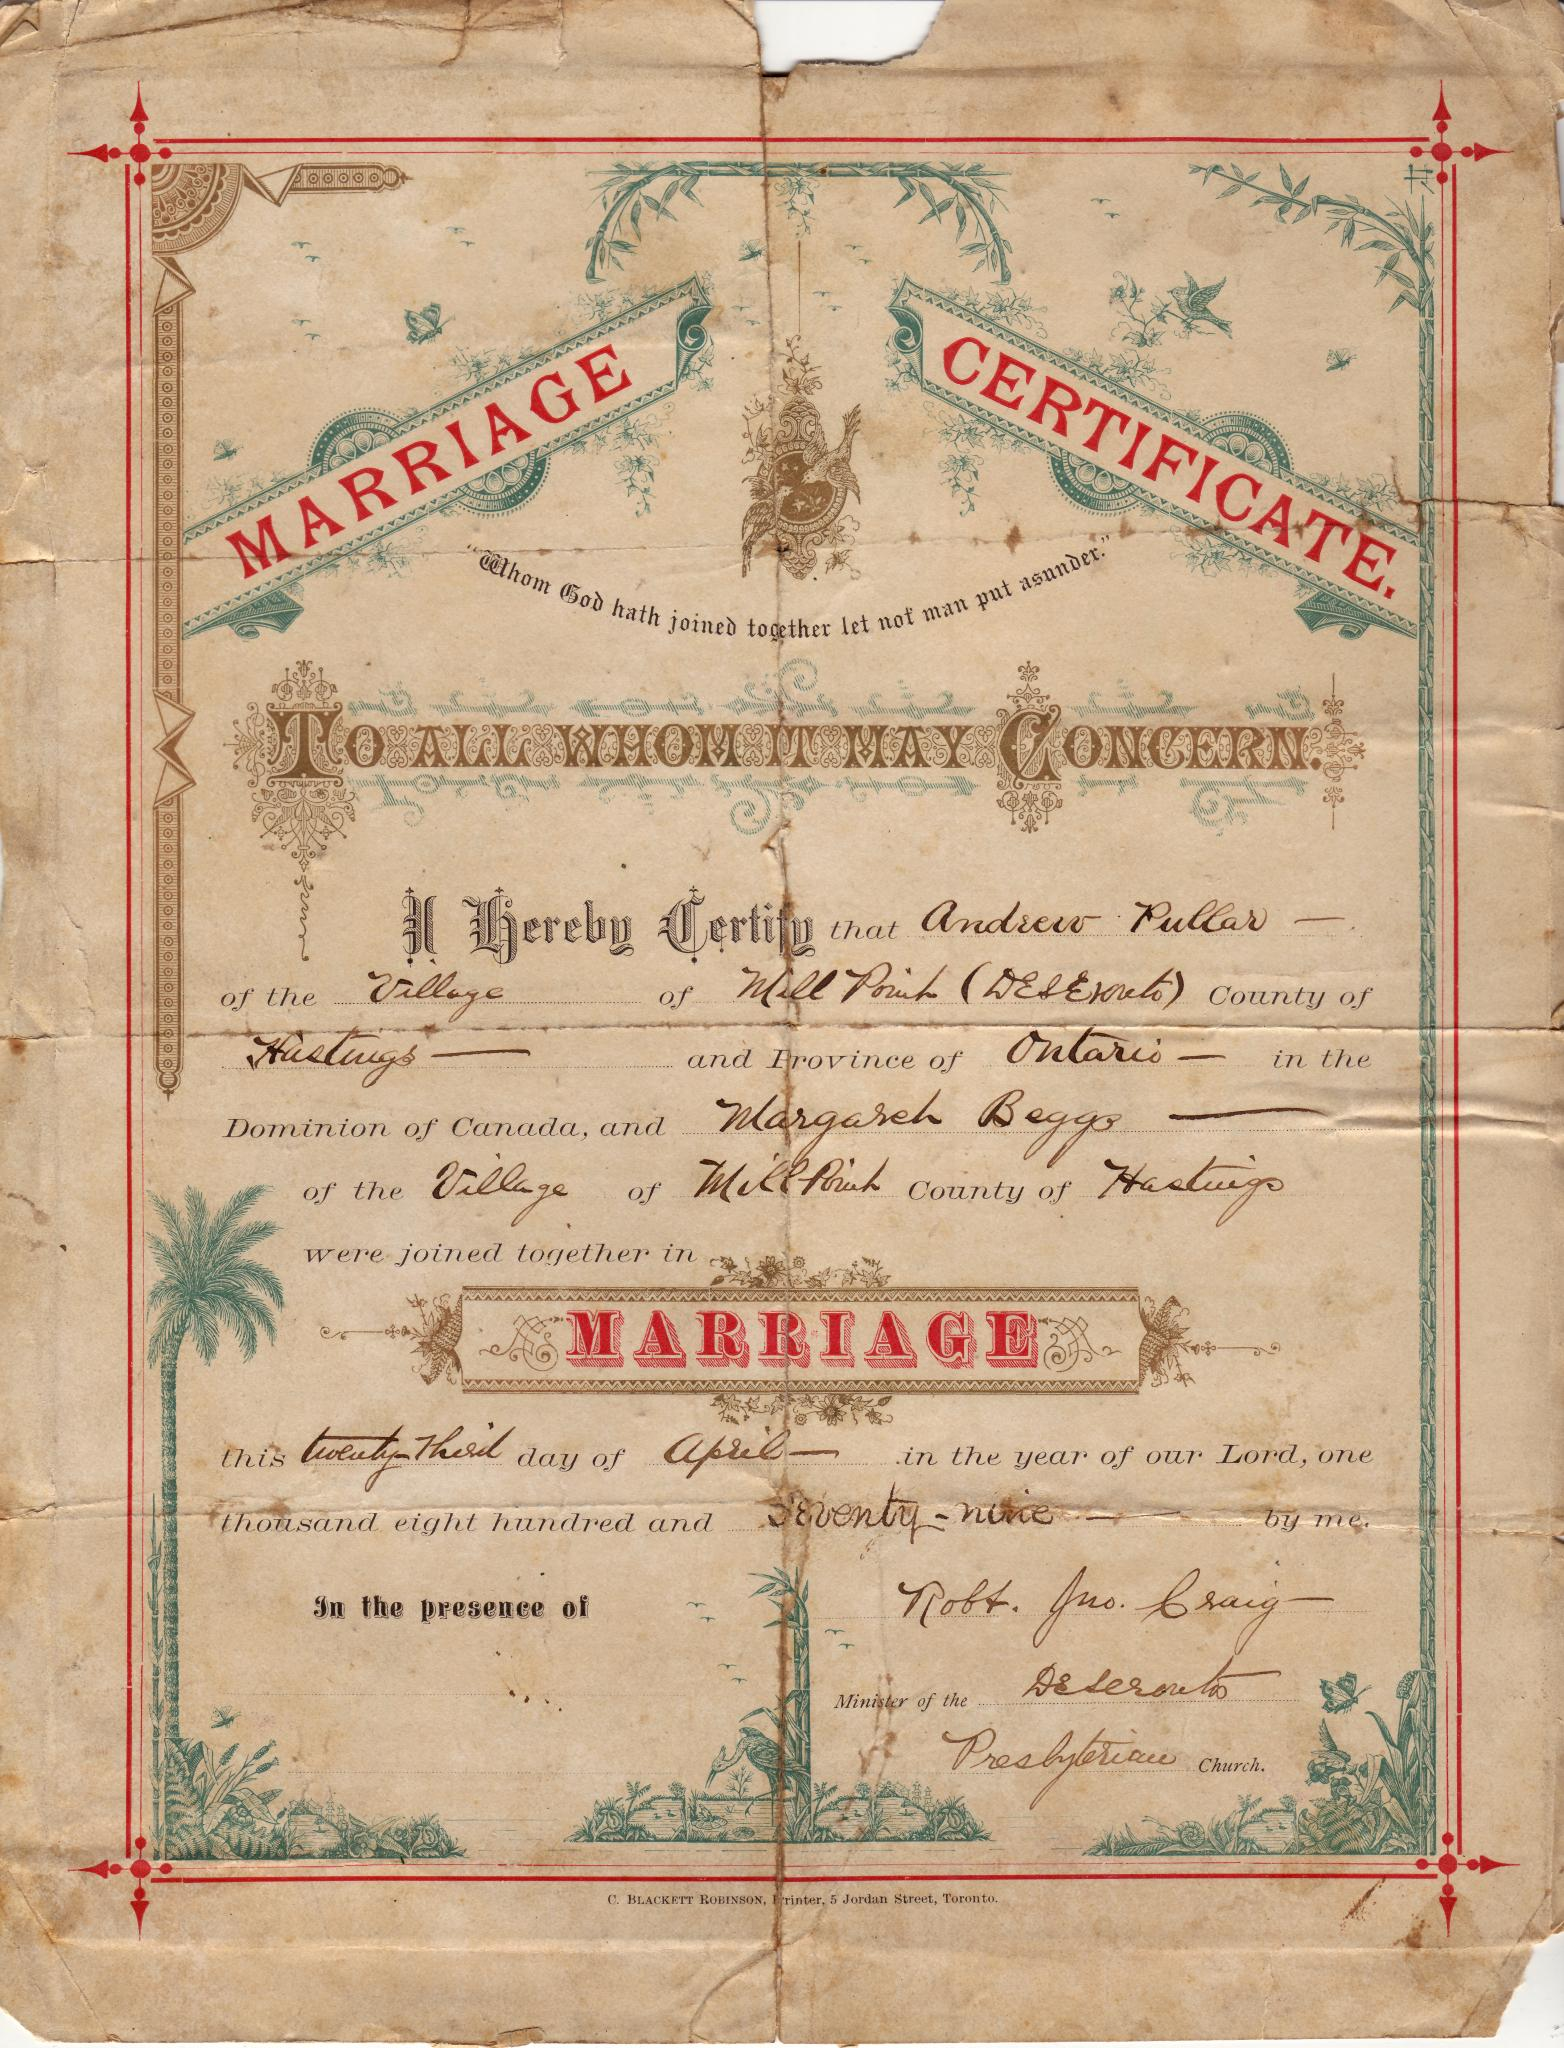 Filemarriage Certificate Of Andrew Pullar And Margaret Beggs